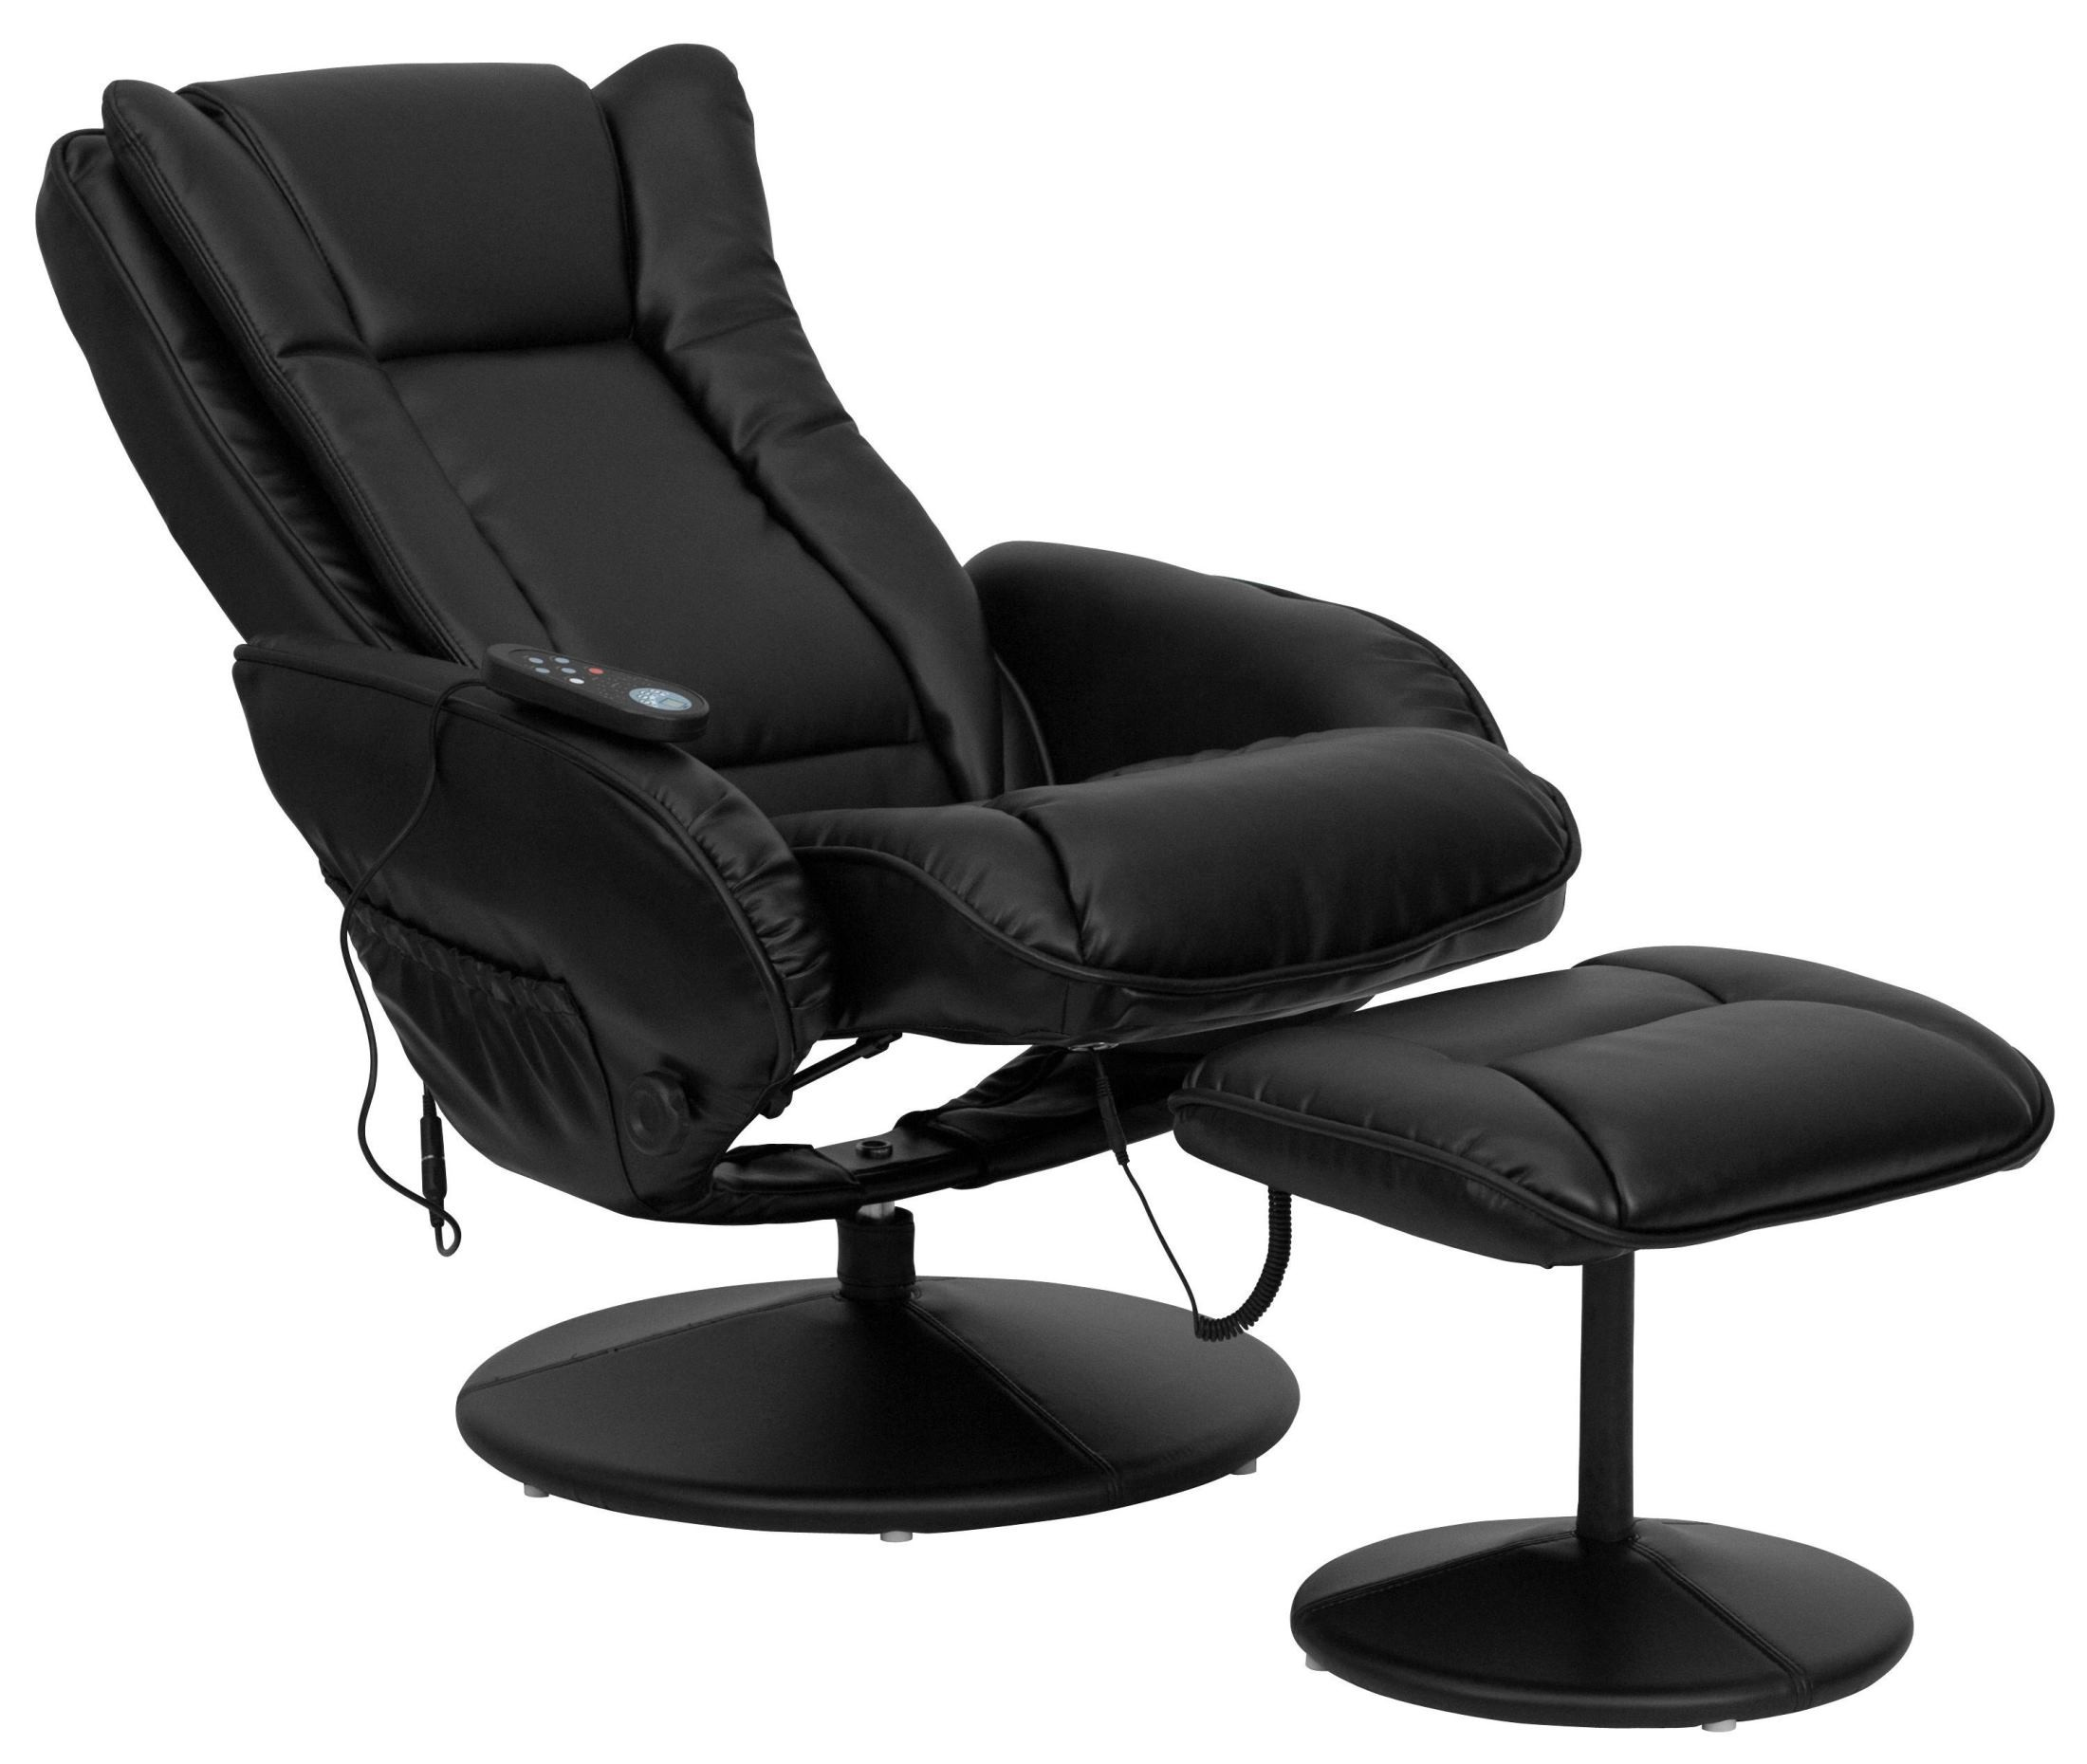 Massaging Black Leather Recliner And Ottoman From Renegade Coleman Furniture